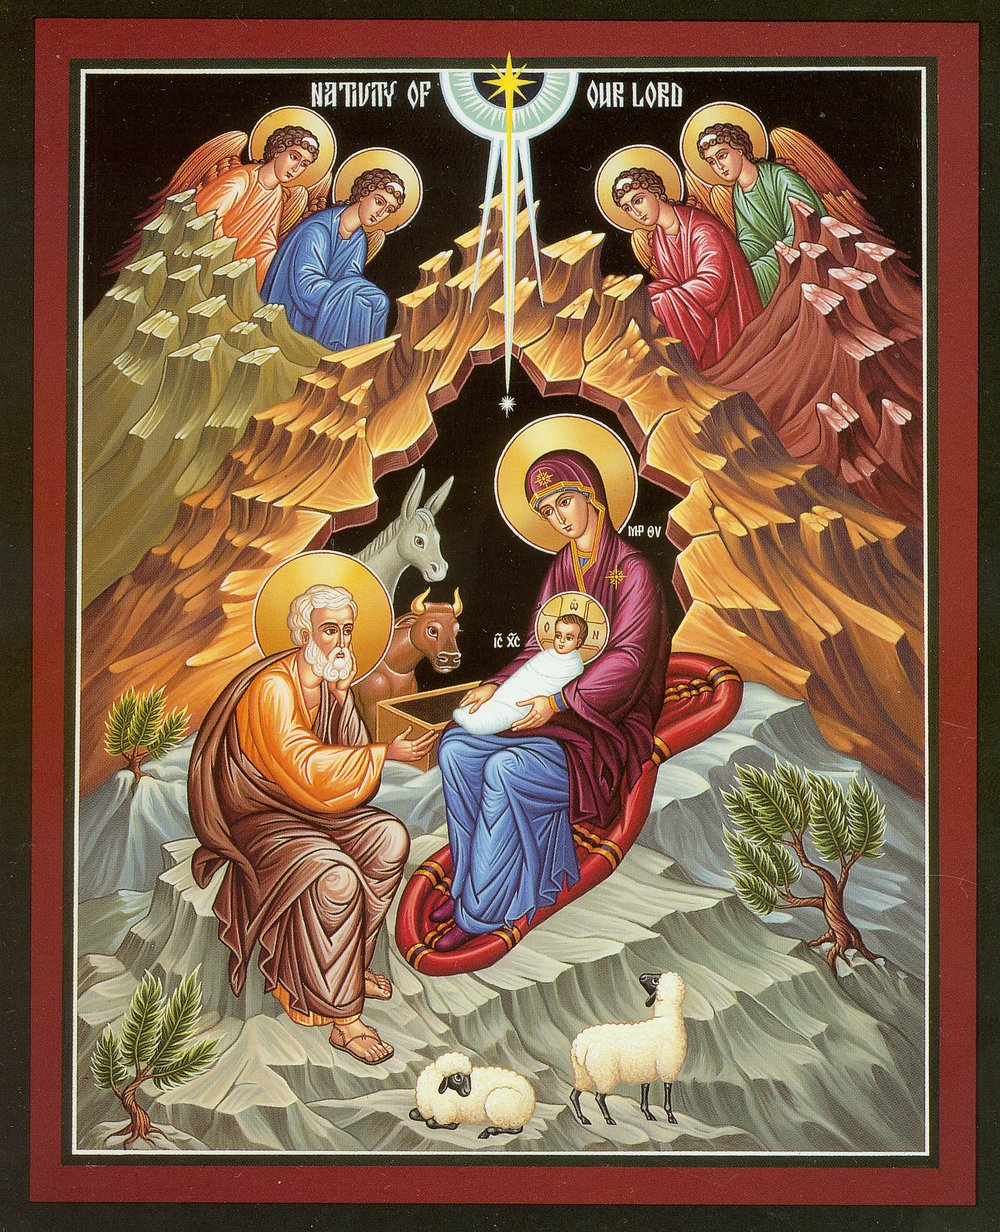 Holy Nativity of our Lord and Savior Jesus Christ